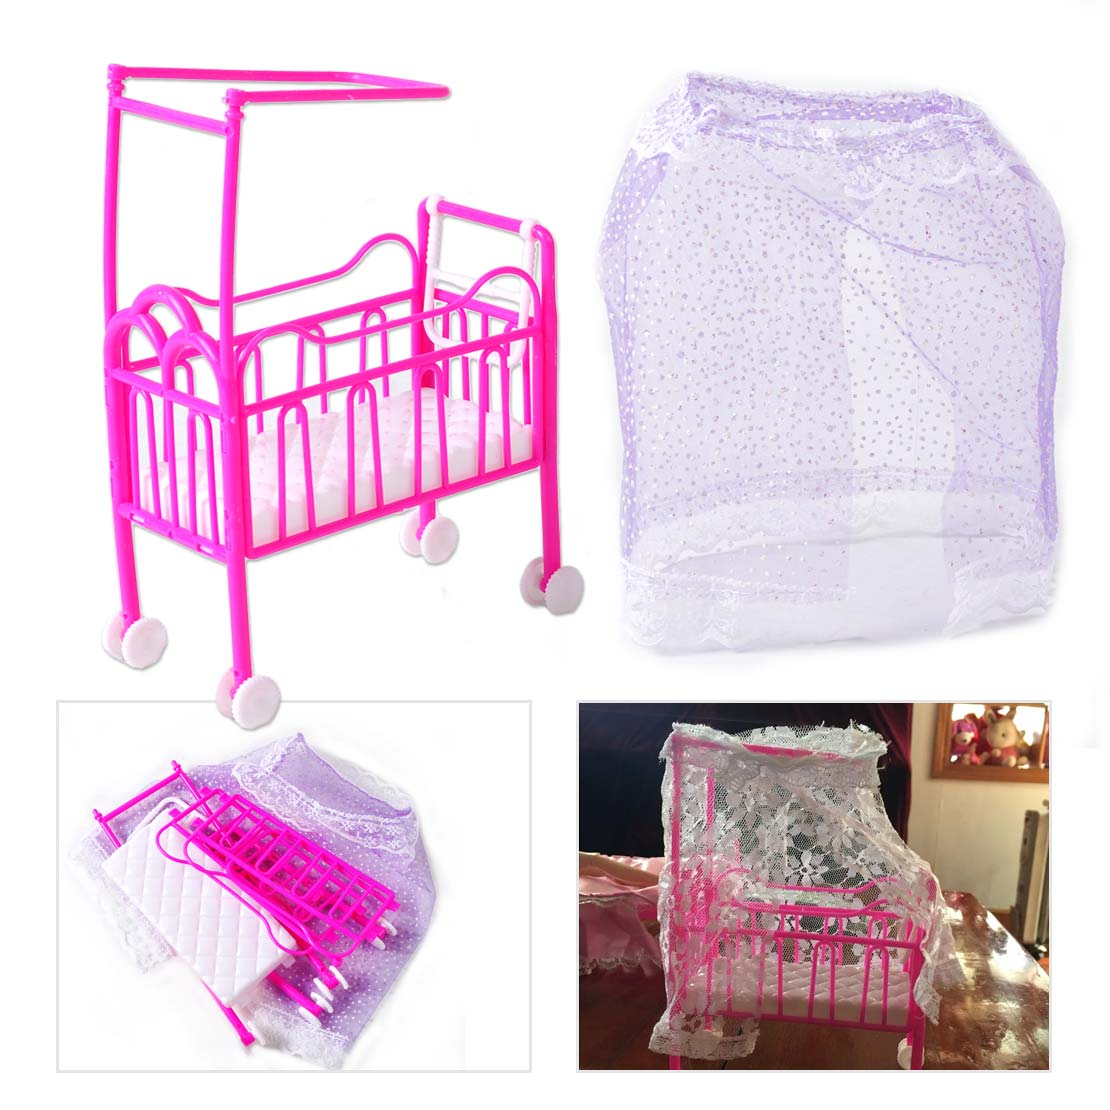 bed miniature dollhouse toy bedroom furniture fit for barbie dolls